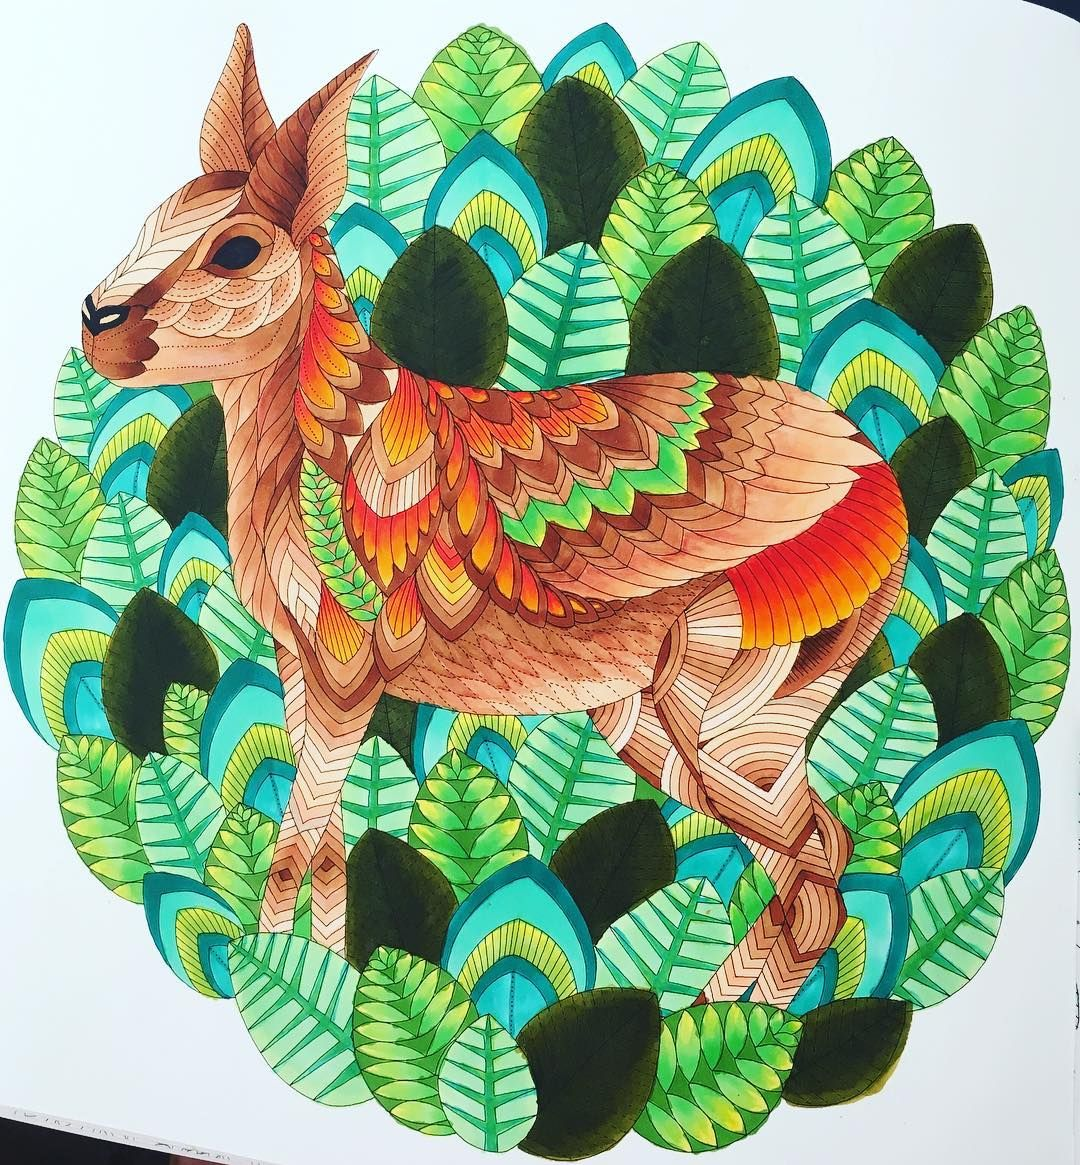 Patagonian Mara from Curious Creatures using Copic Markers #milliemarotta #curiouscreatures #copicmarkers #copicamateur #adultcoloringbook #patagonianmara